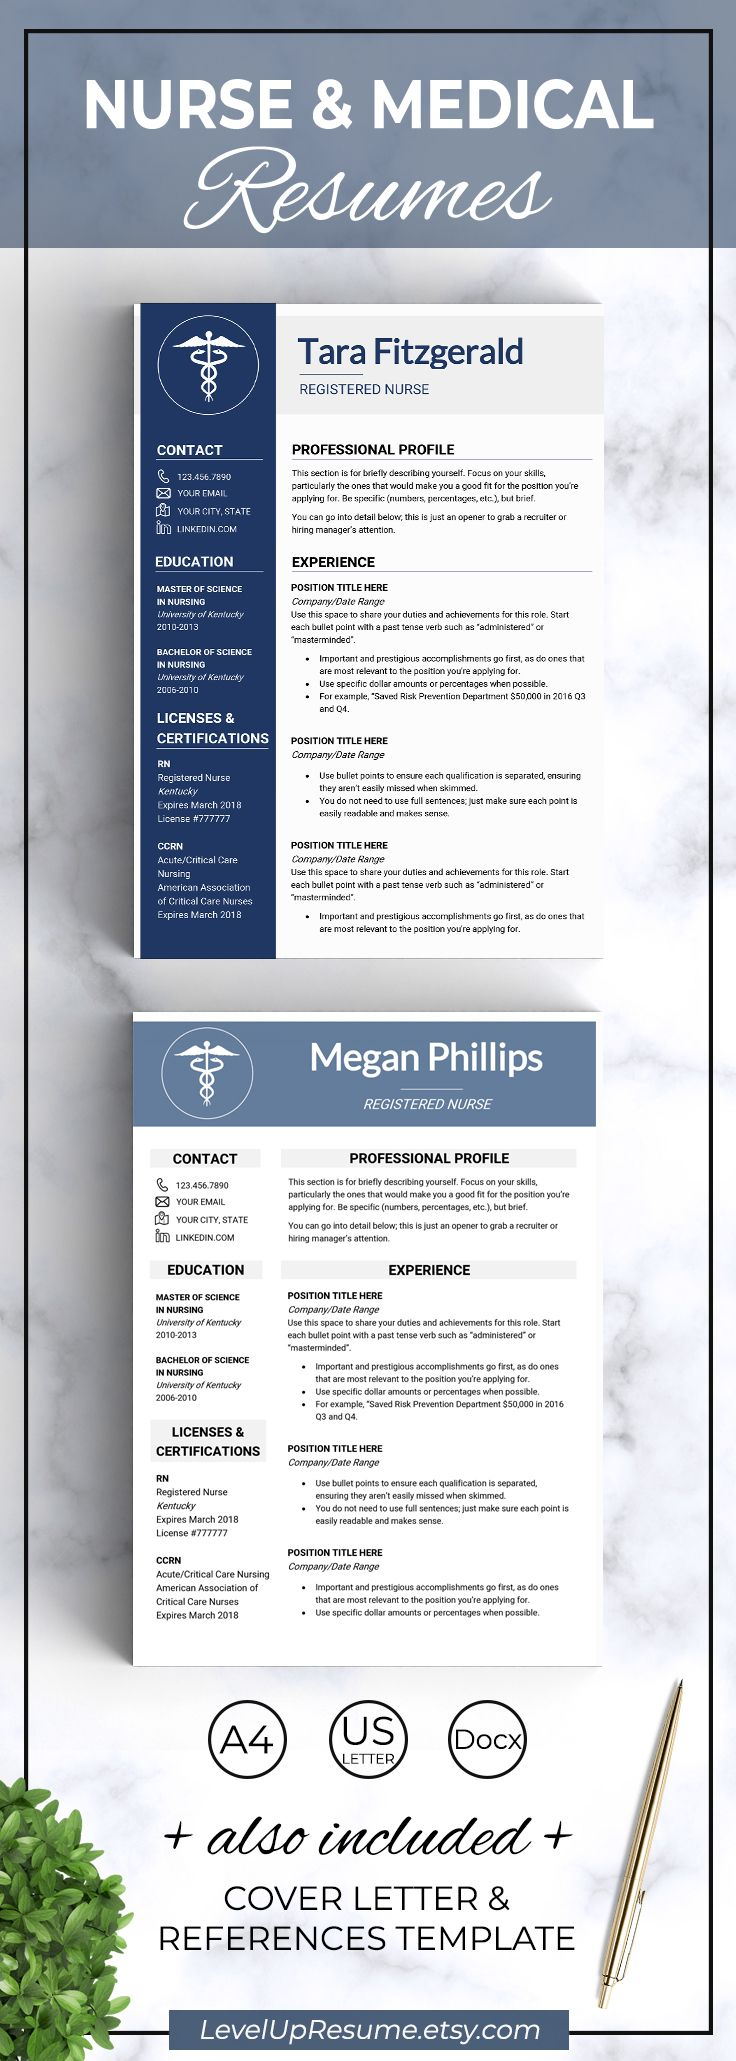 Medical Resume Template Cv Template Medical Cv Doctor Cv Doctor